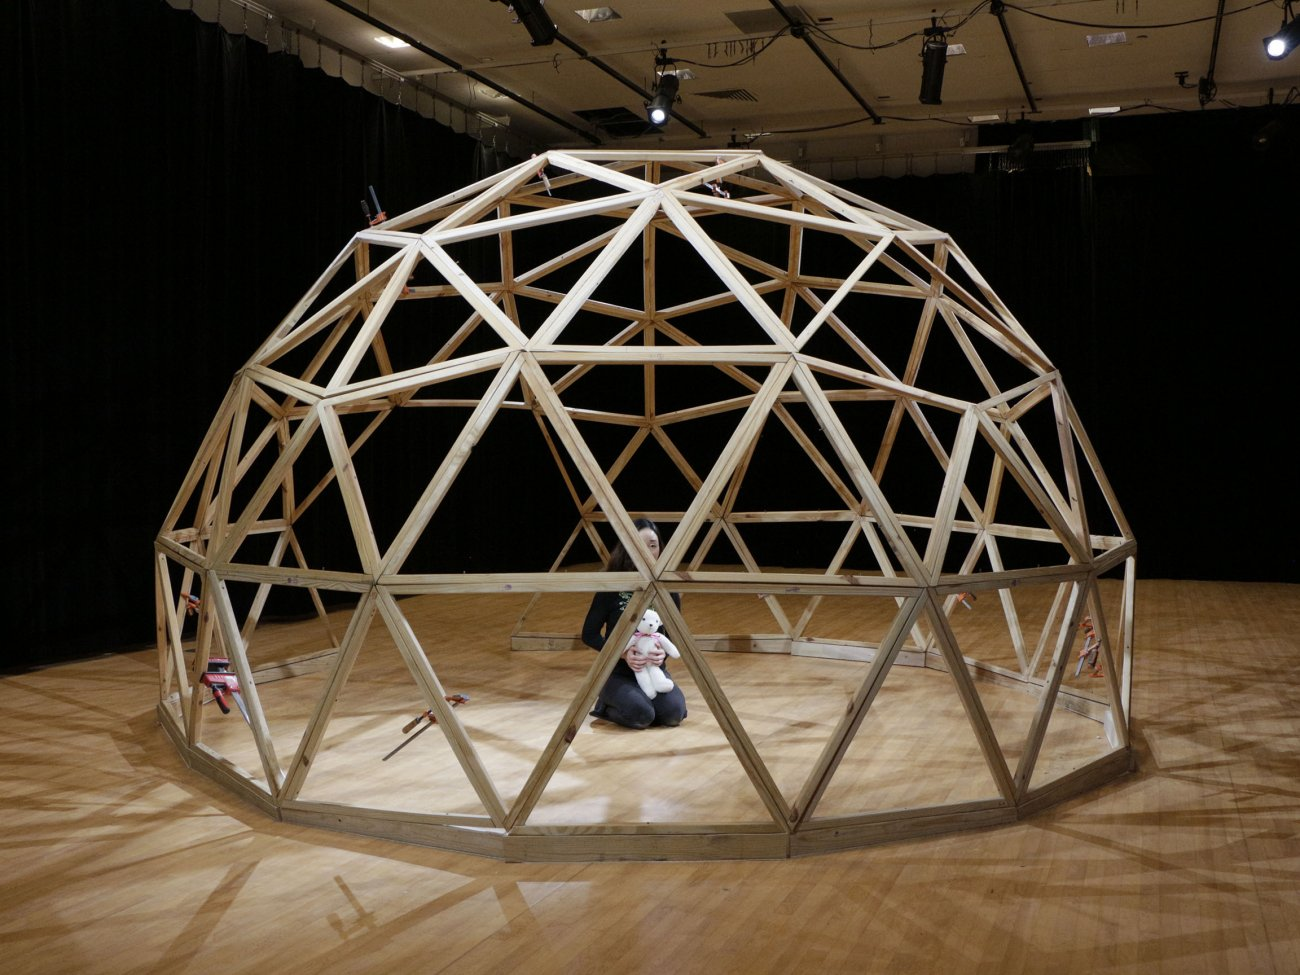 Photograph of a large geodesic dome made of wood, a person is crouched on their knees inside of the dome holding a stuffed animal